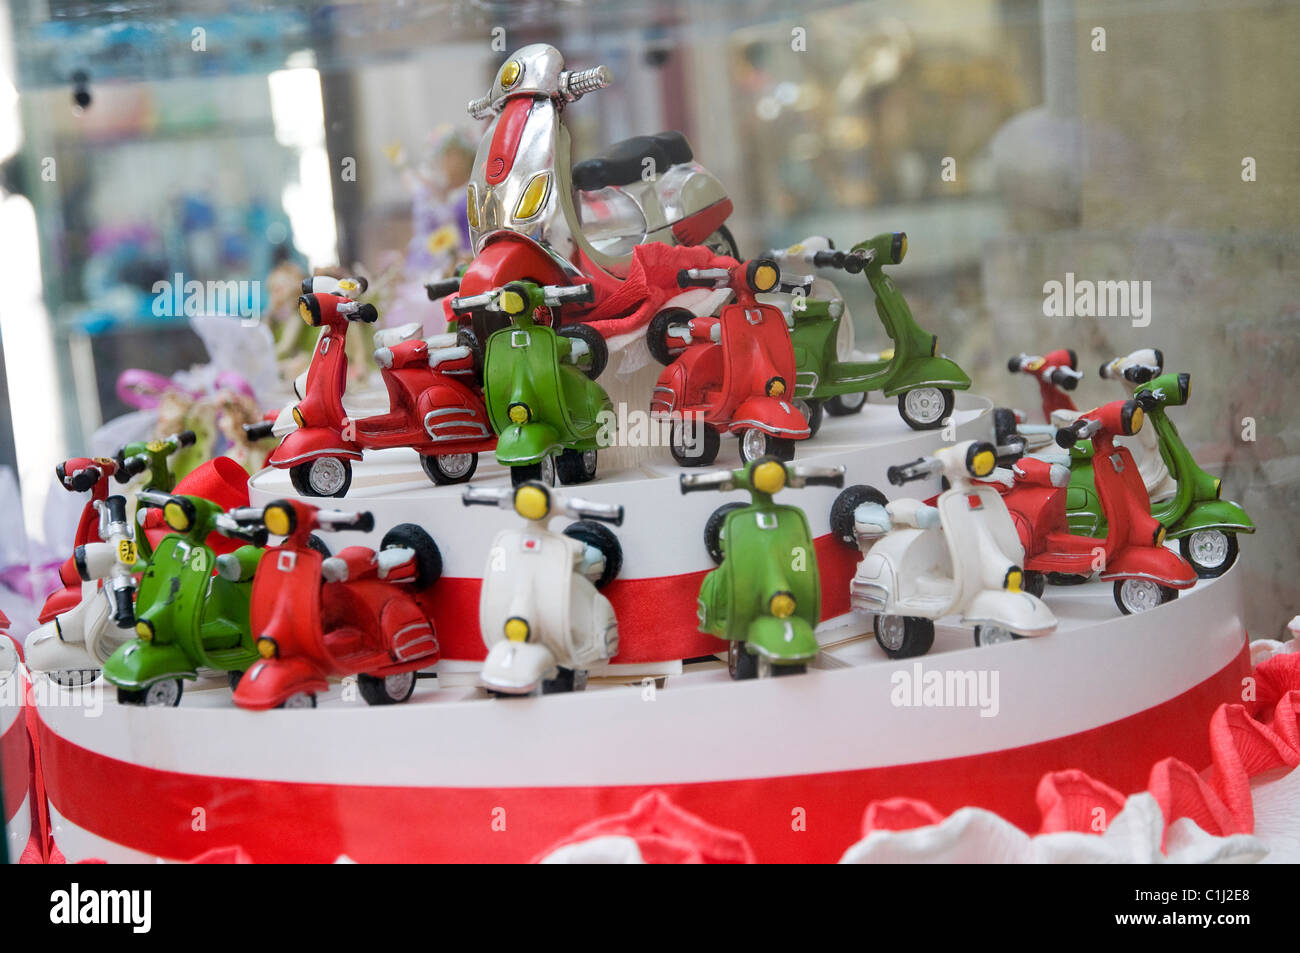 vespa scooter cake in shop window, turin, italy - Stock Image